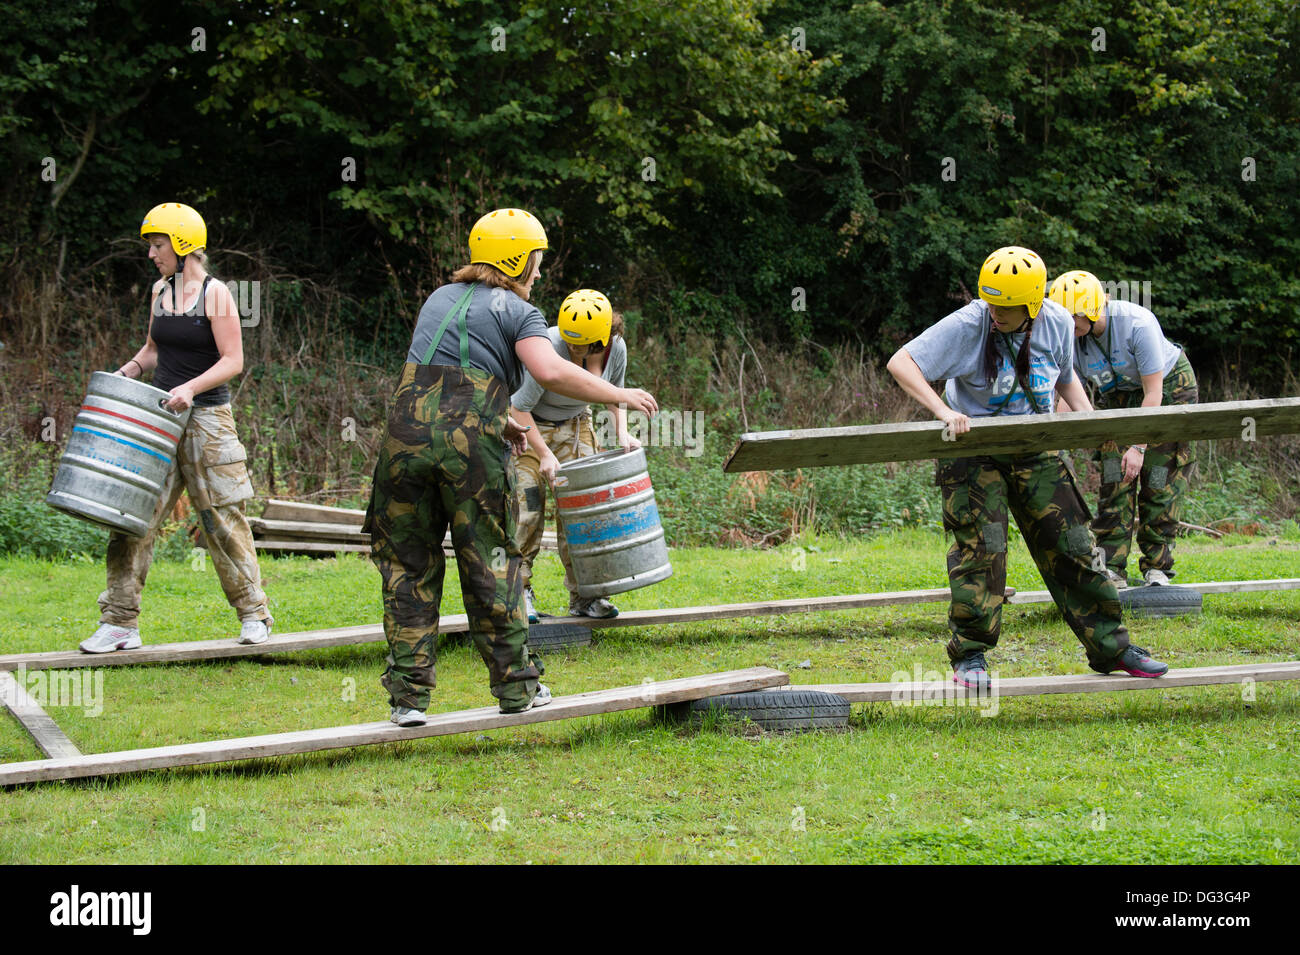 A group of adult women on a team building teambuilding exercise problem  solving outdoor pursuits workshop event UK